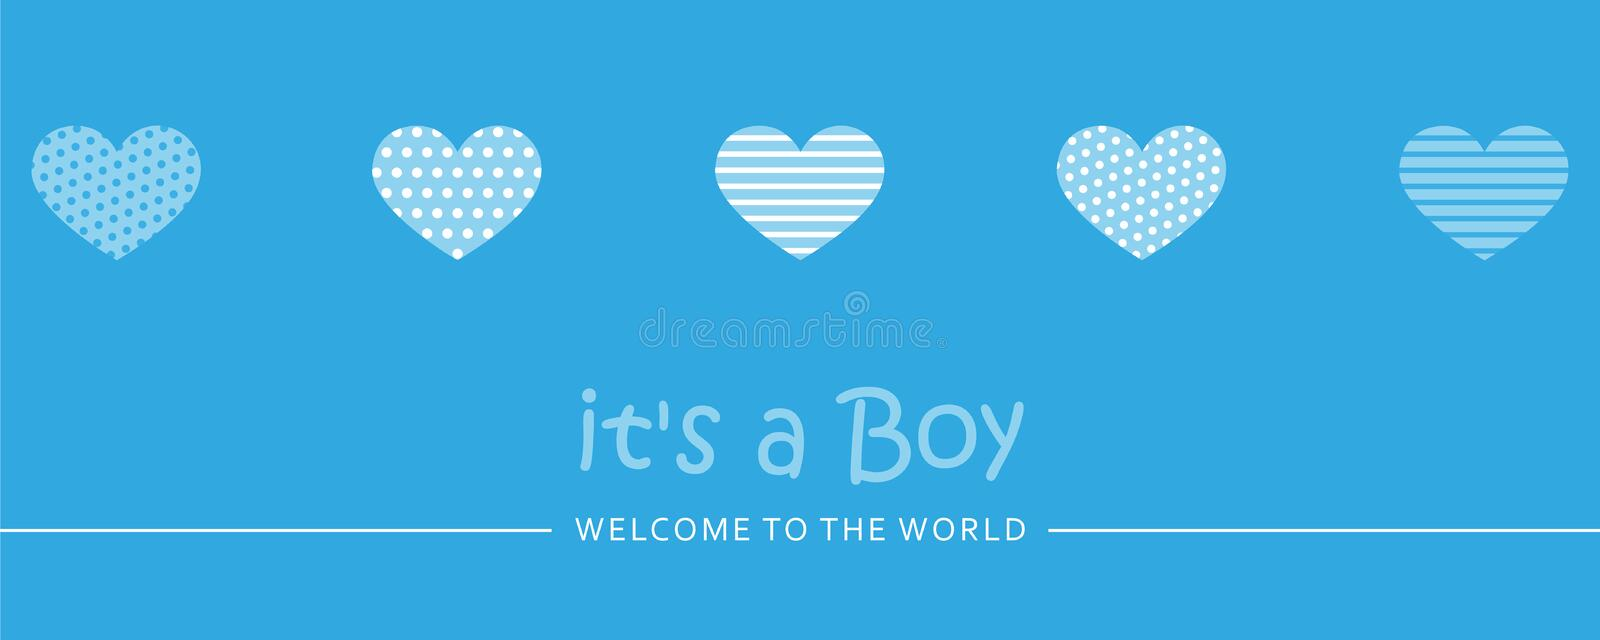 Its a boy welcome greeting card for childbirth with hearts. Vector illustration EPS10 vector illustration